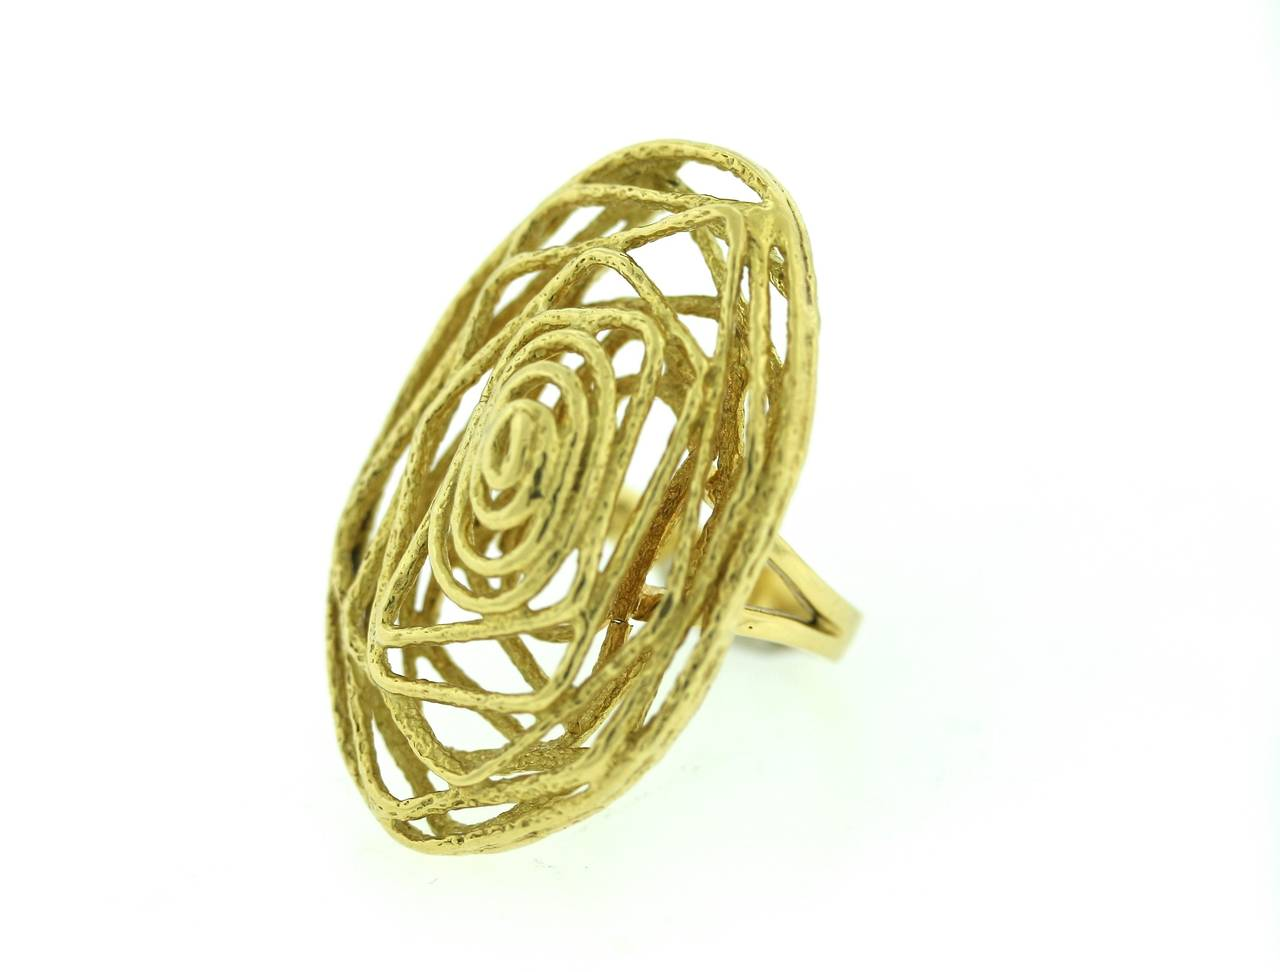 1970s Abstract Gold Ring At 1stdibs. Semi Mount Wedding Rings. Argyle Engagement Rings. Attached Wedding Rings. Nightwing Rings. Vaccaro Engagement Rings. Gold 2015 Engagement Rings. Gotham Engagement Rings. Wide Band Wedding Rings